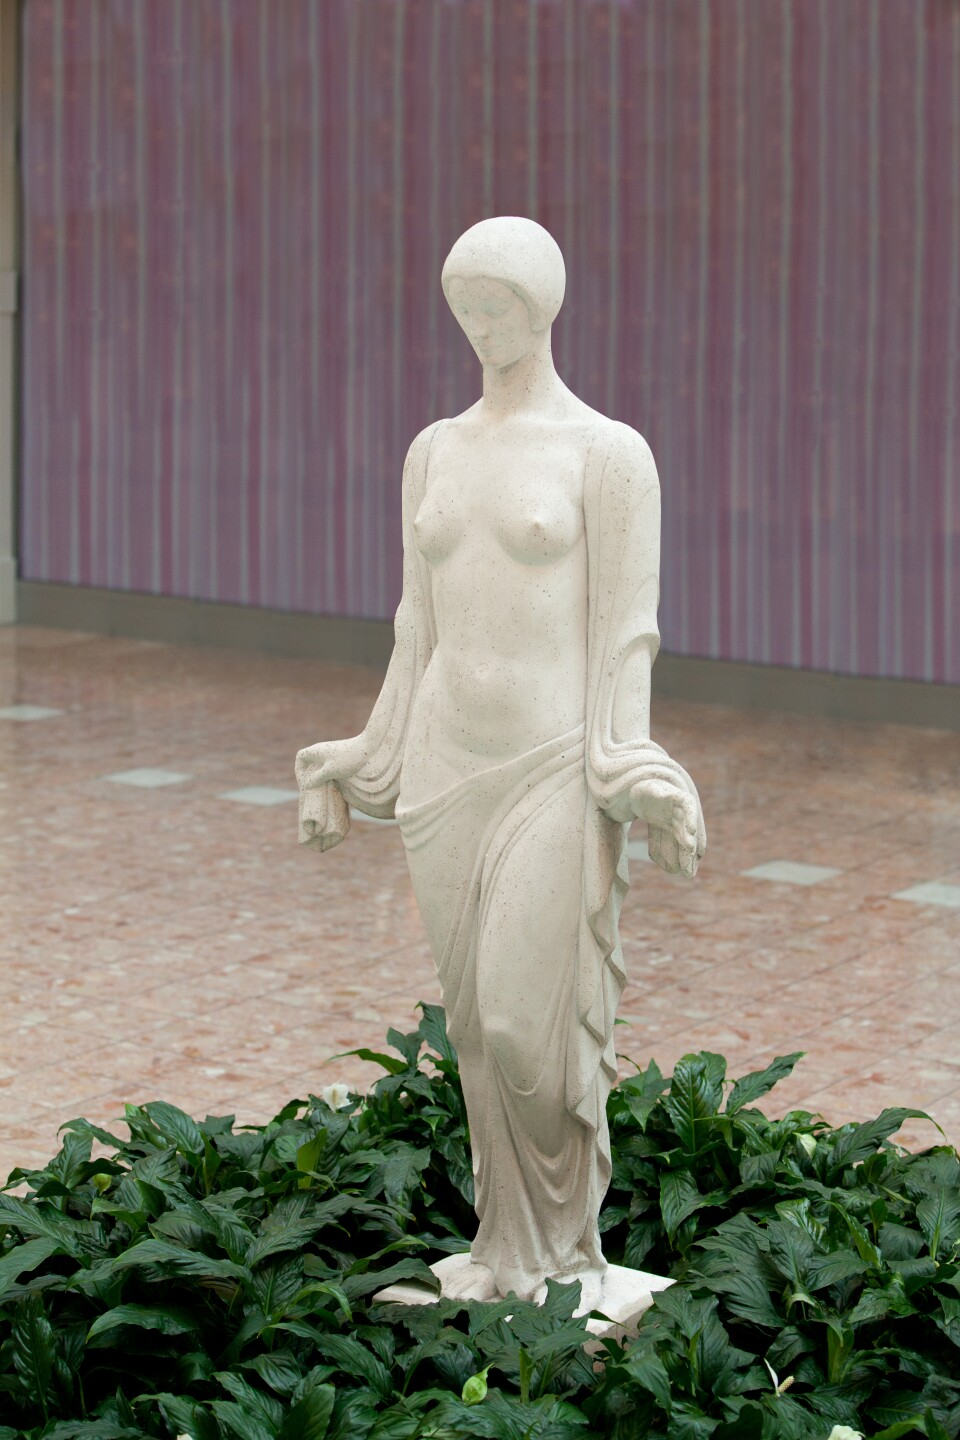 Maya by Wheeler Williams – a stone cast sculpture originally created for the artist's garden, offering serenity through its grace and elegance.